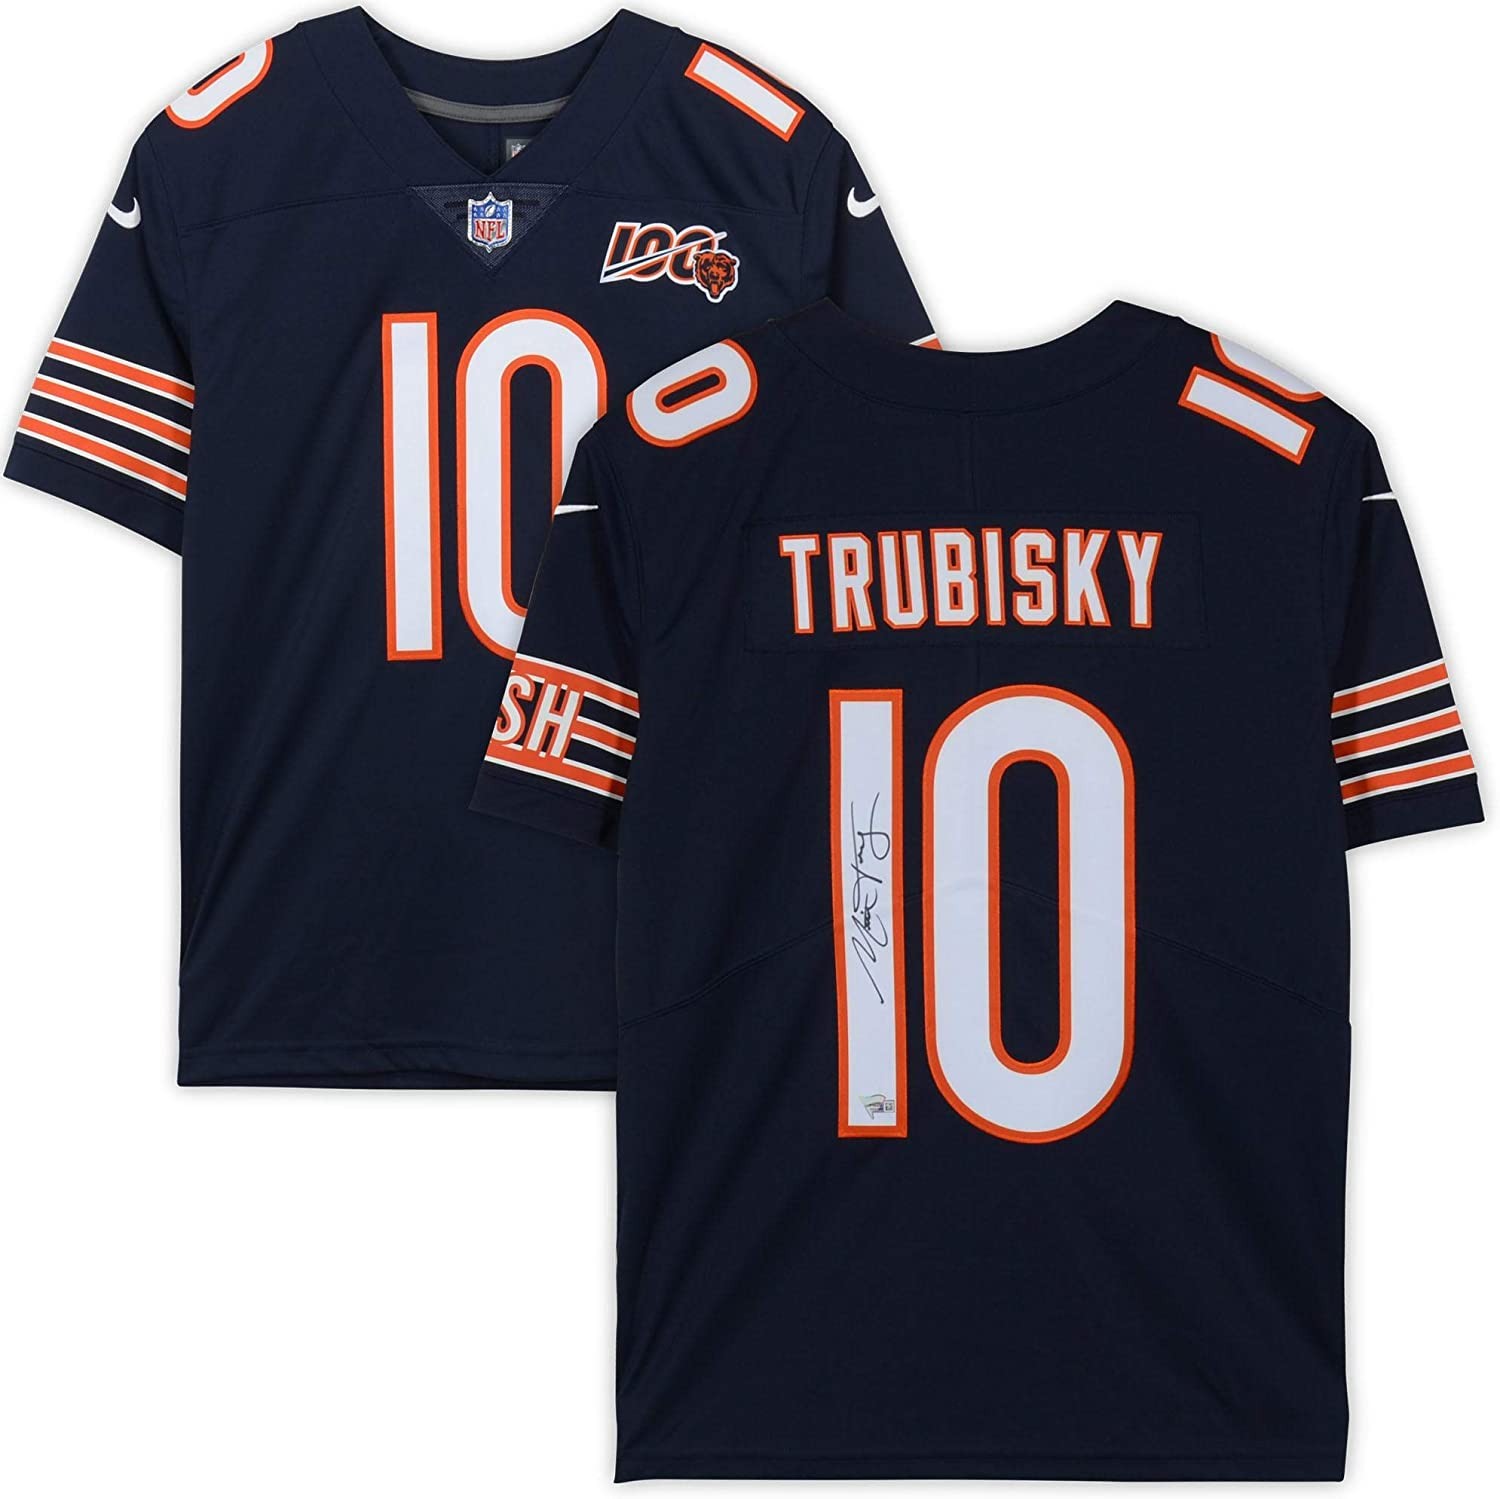 Mitchell Trubisky Chicago Bears Autographed Navy Nike NFL 100 ...